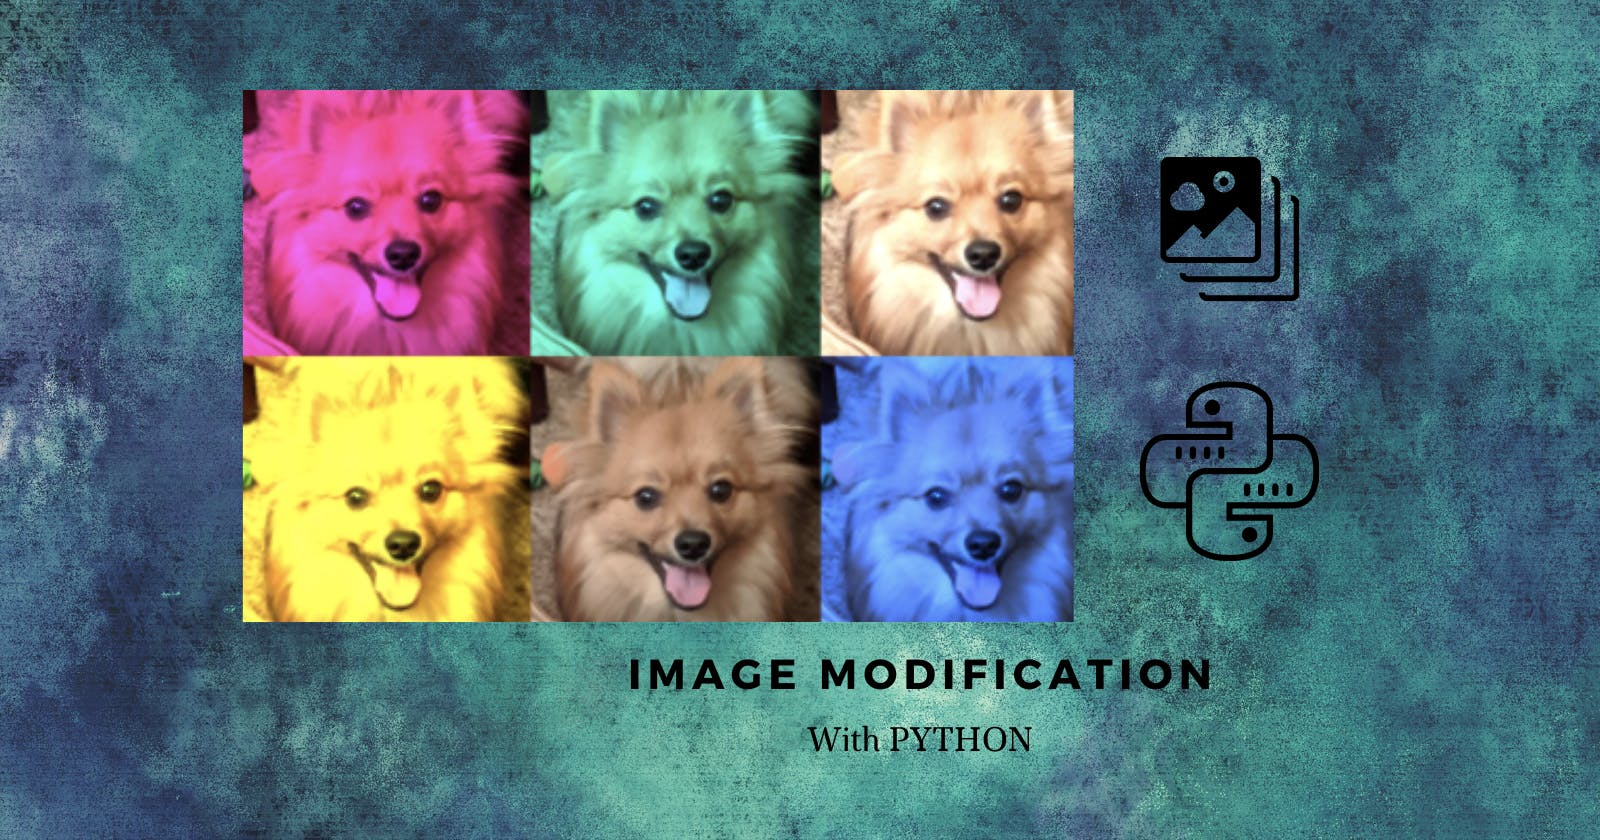 Image modification using SimpleImage library!